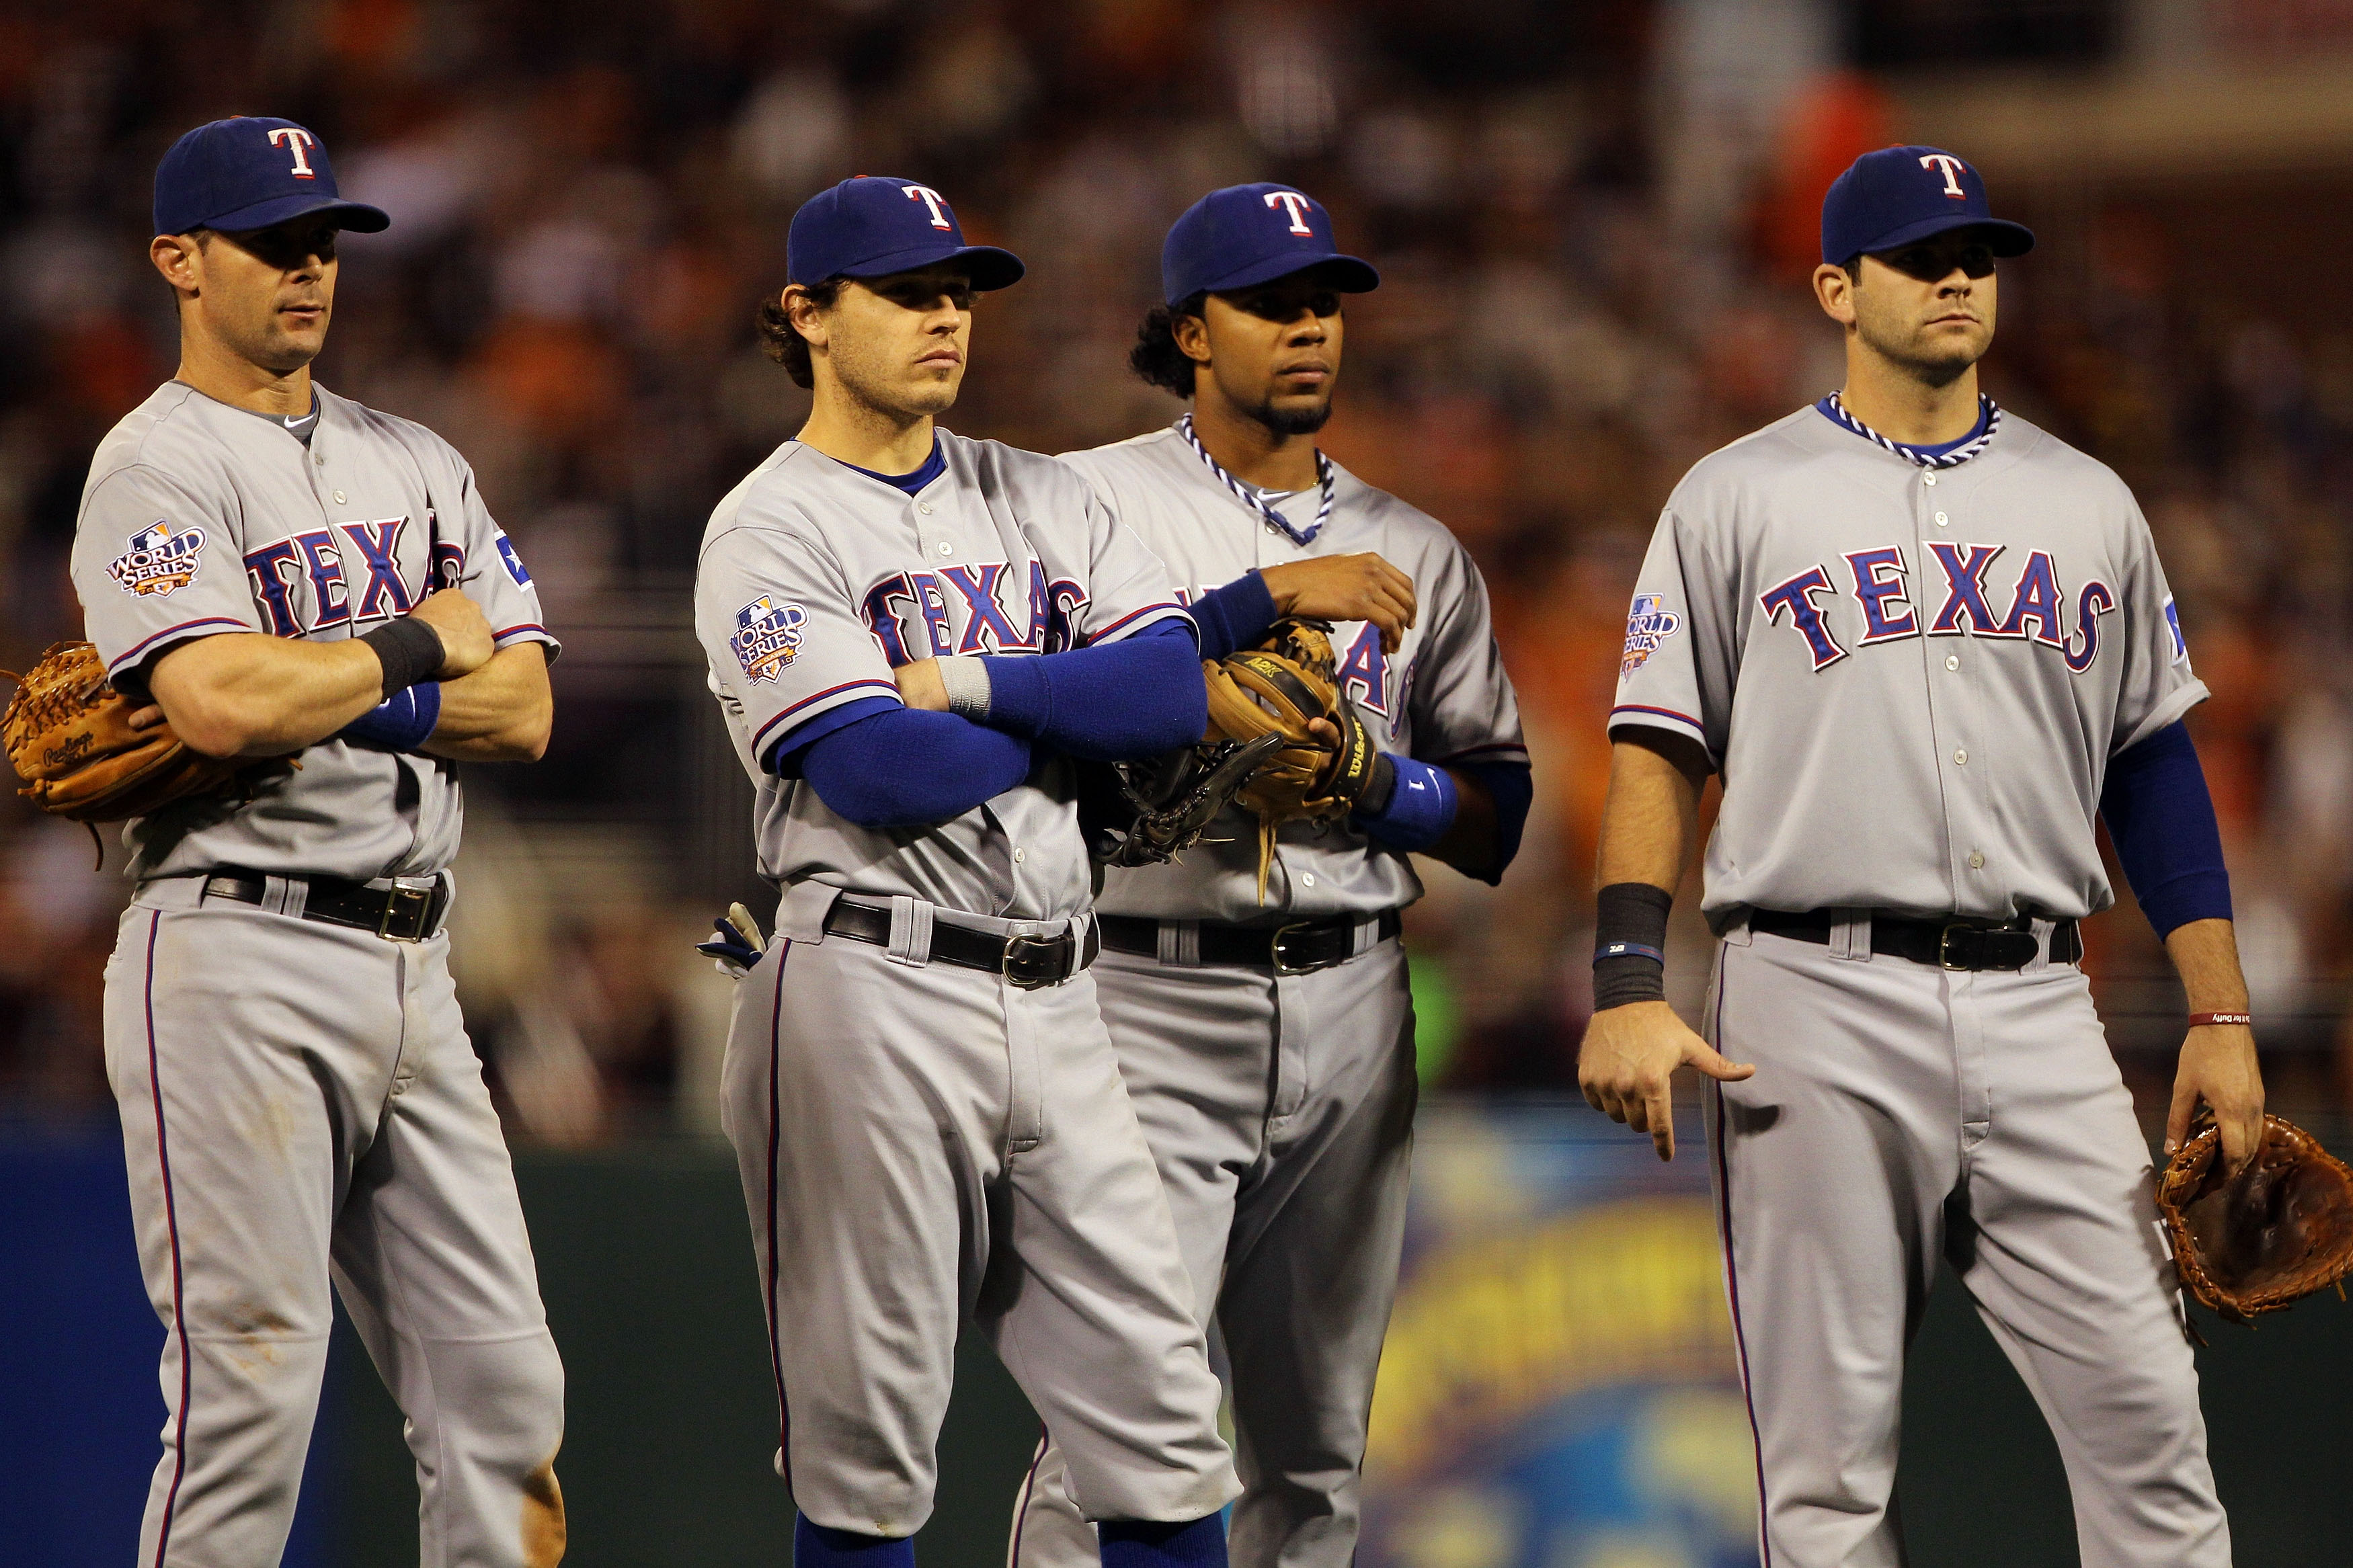 SAN FRANCISCO - OCTOBER 28:  (L-R) Michael Young #10, Ian Kinsler #5, Elvis Andrus #1 and Mitch Moreland #18 of the Texas Rangers stand together during a pitching change in the seventh inning while taking on the San Francisco Giants in Game Two of the 201